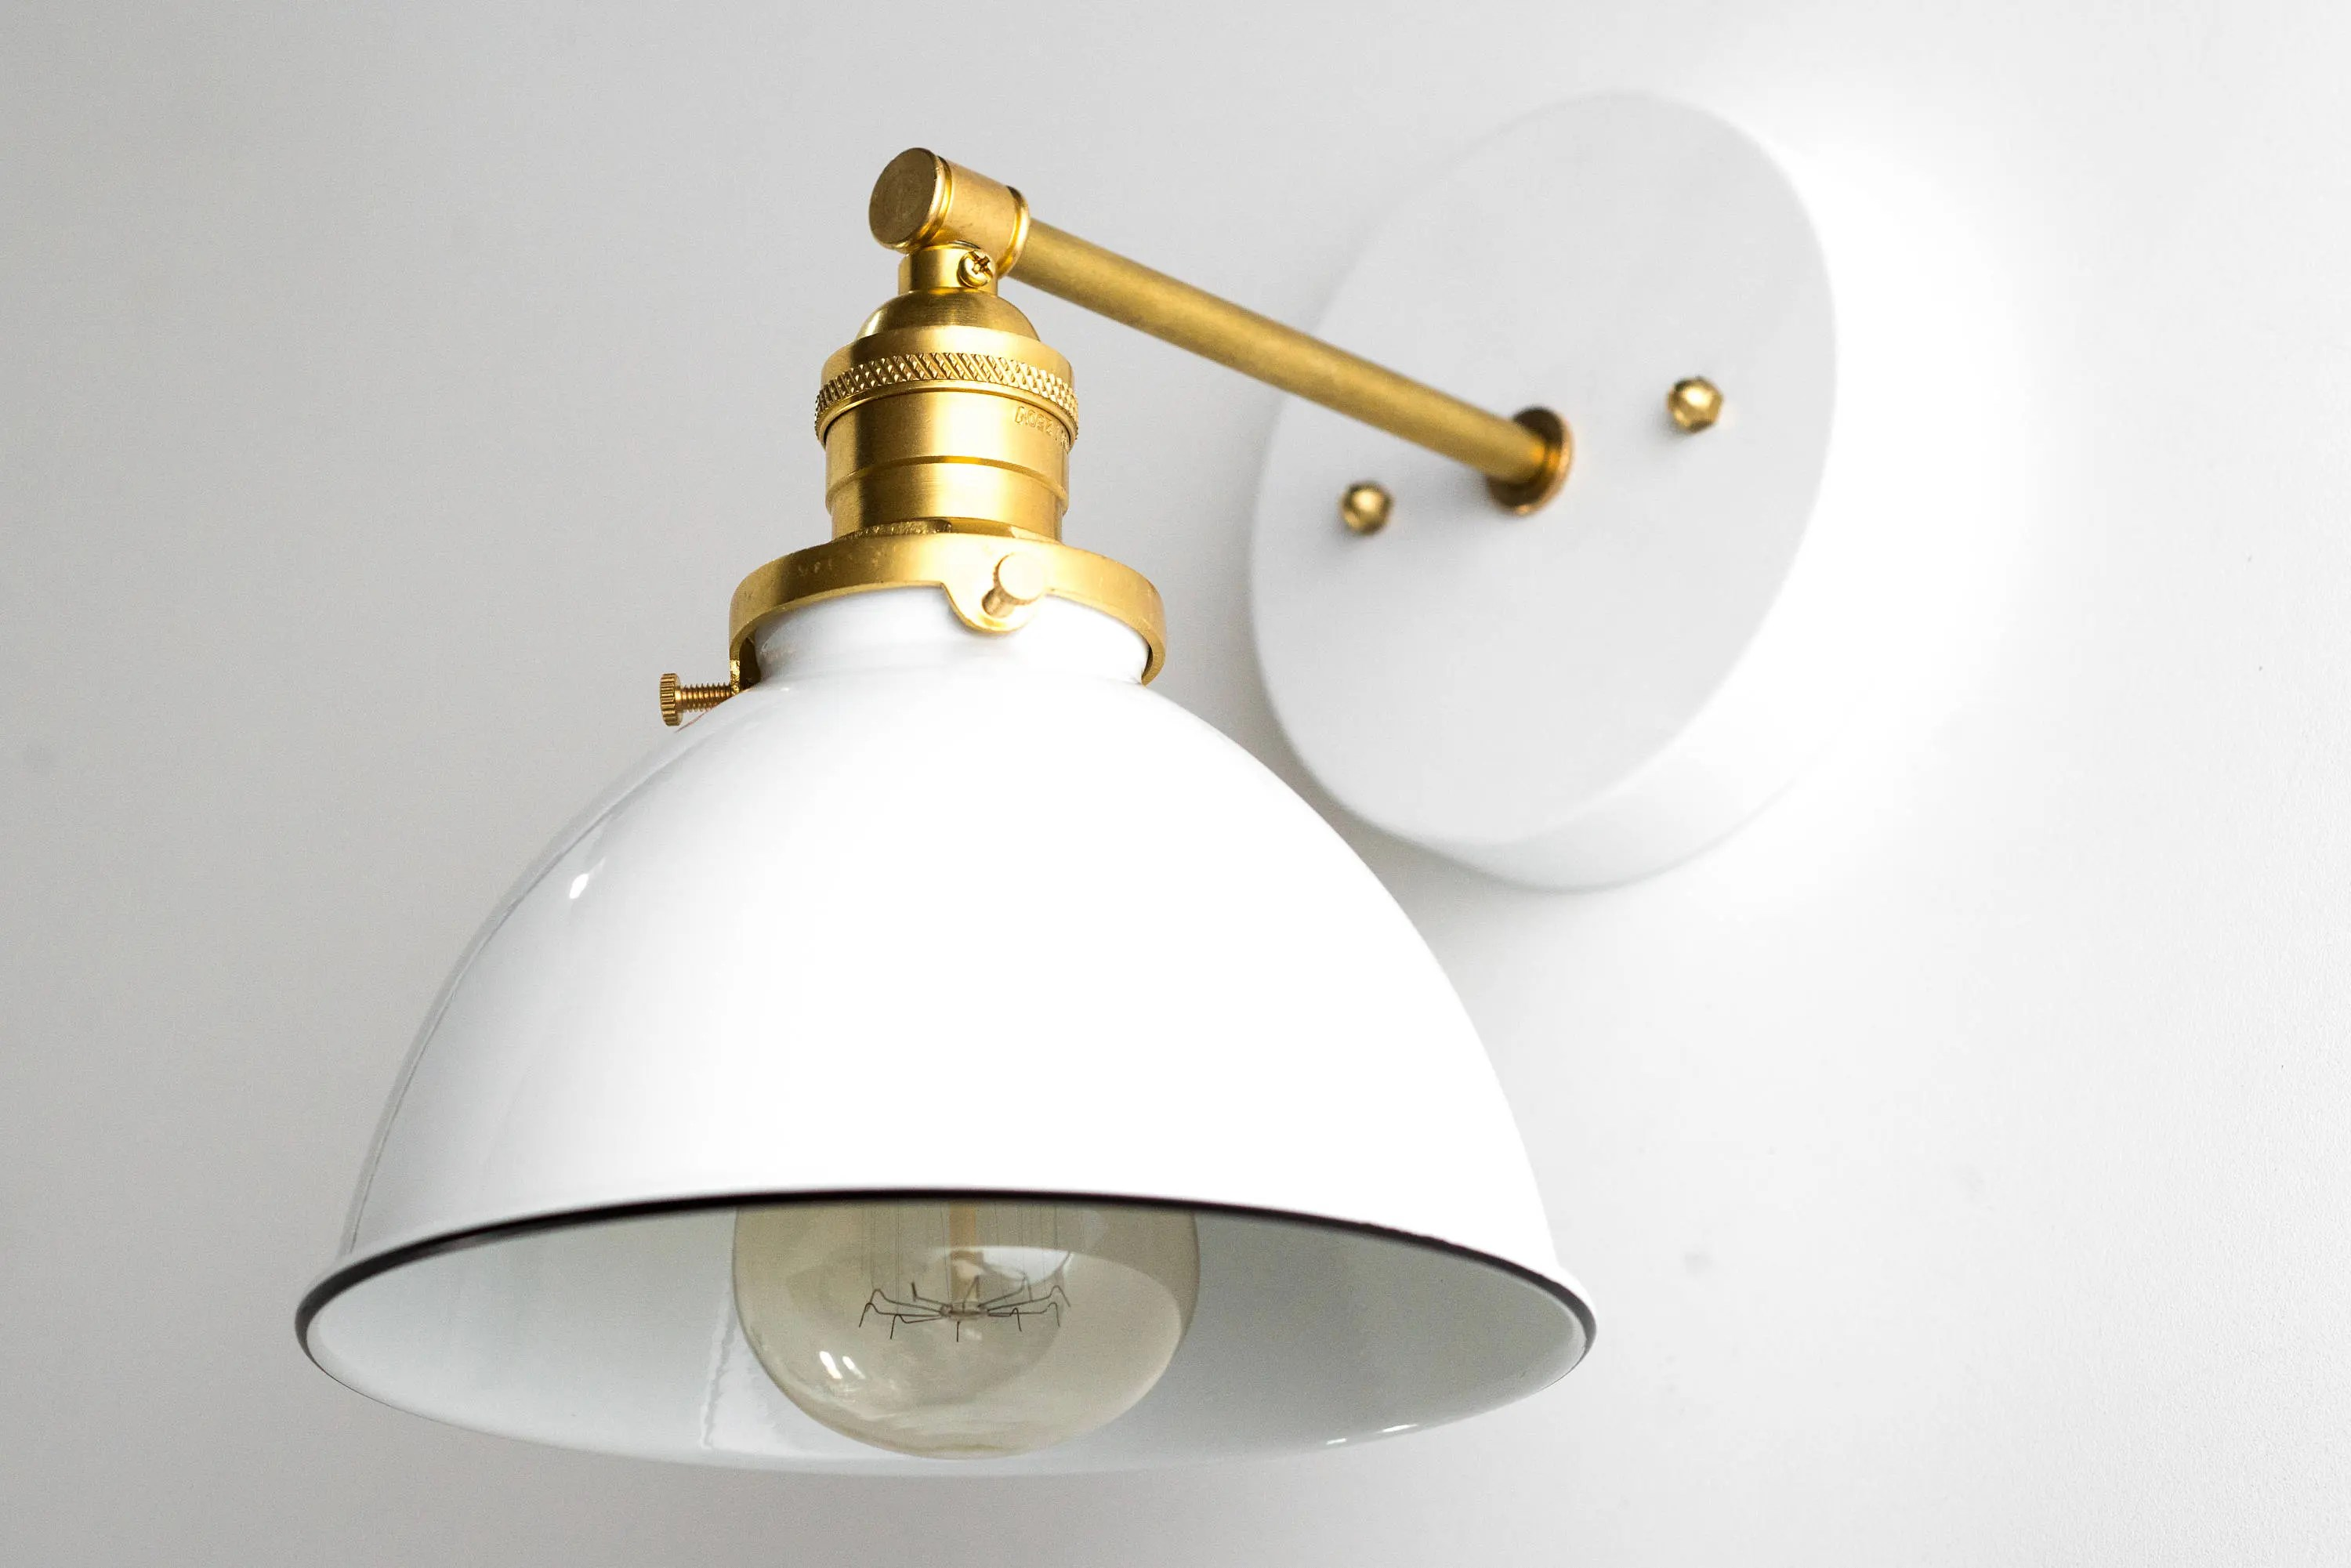 Industrial Sconce Bathroom Wall Light White Sconce on Bathroom Wall Sconce Lighting id=13484